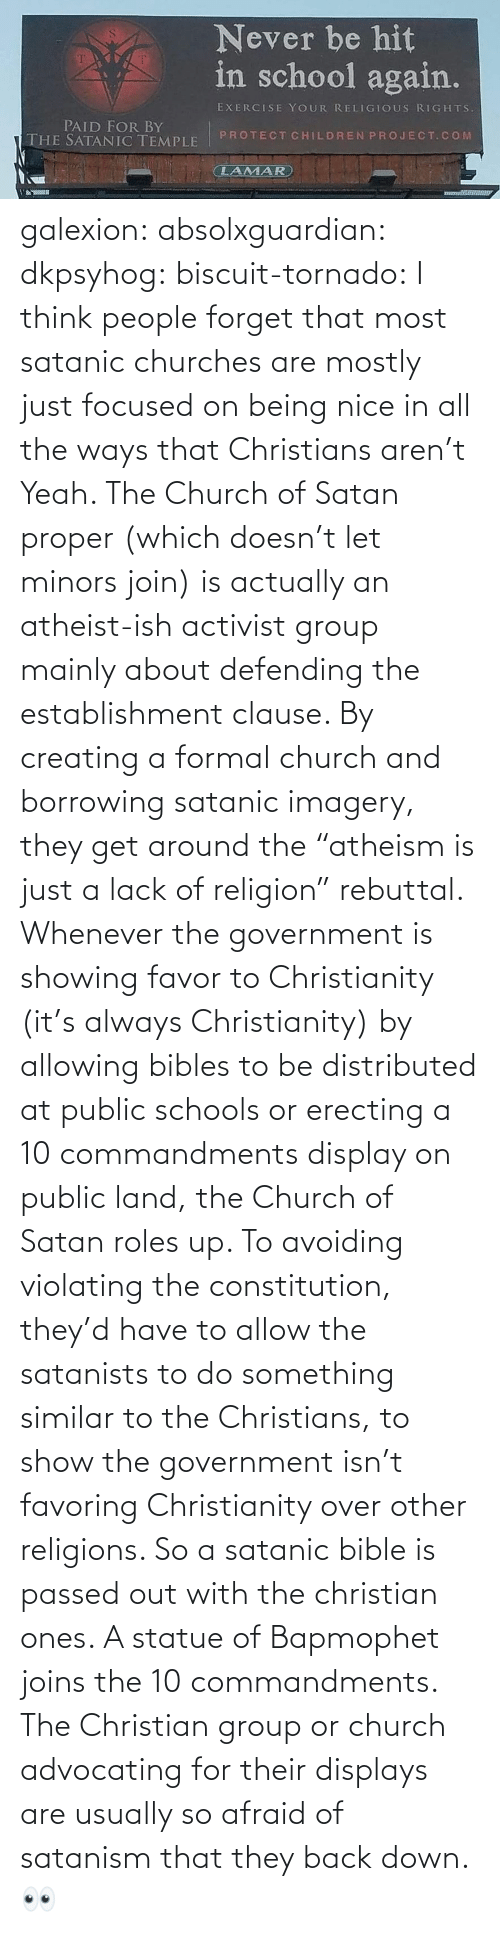 "Similar: galexion:  absolxguardian:  dkpsyhog:  biscuit-tornado:     I think people forget that most satanic churches are mostly just focused on being nice in all the ways that Christians aren't  Yeah. The Church of Satan proper (which doesn't let minors join) is actually an atheist-ish activist group mainly about defending the establishment clause. By creating a formal church and borrowing satanic imagery, they get around the ""atheism is just a lack of religion"" rebuttal. Whenever the government is showing favor to Christianity (it's always Christianity) by allowing bibles to be distributed at public schools or erecting a 10 commandments display on public land, the Church of Satan roles up. To avoiding violating the constitution, they'd have to allow the satanists to do something similar to the Christians, to show the government isn't favoring Christianity over other religions. So a satanic bible is passed out with the christian ones. A statue of Bapmophet joins the 10 commandments. The Christian group or church advocating for their displays are usually so afraid of satanism that they back down.   👀"